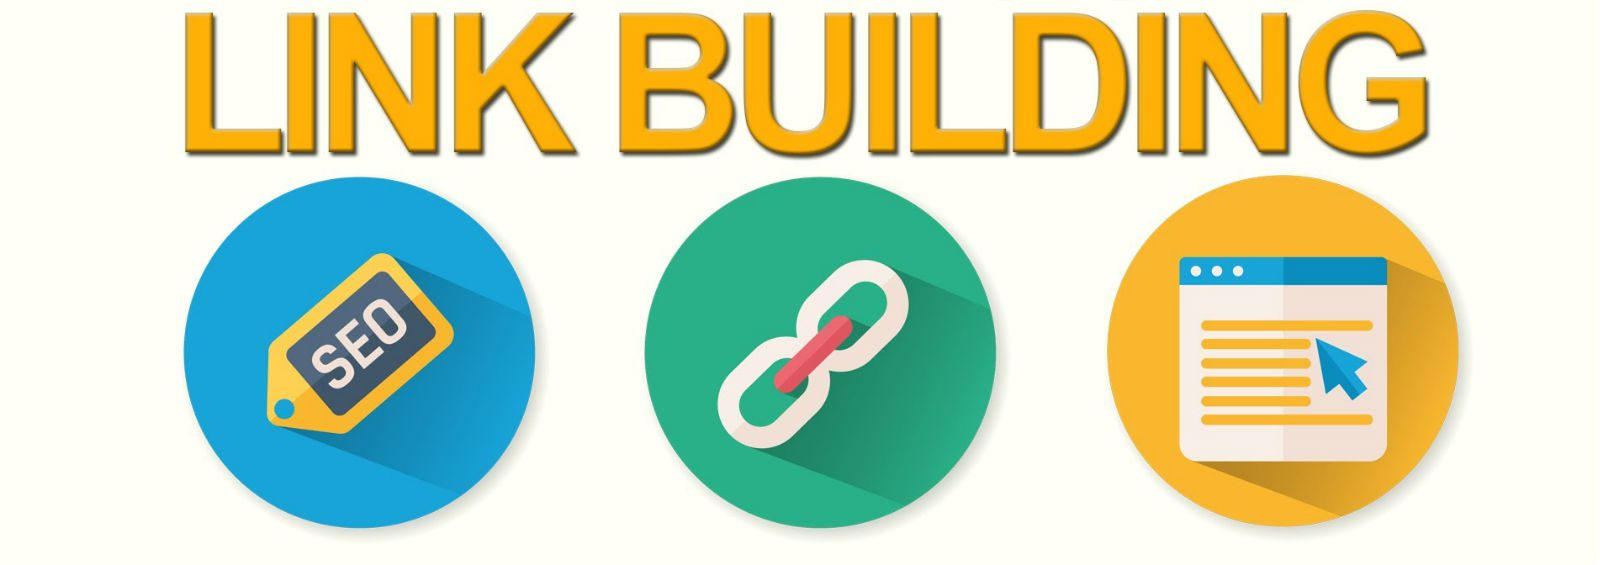 Link Building Tips Guide